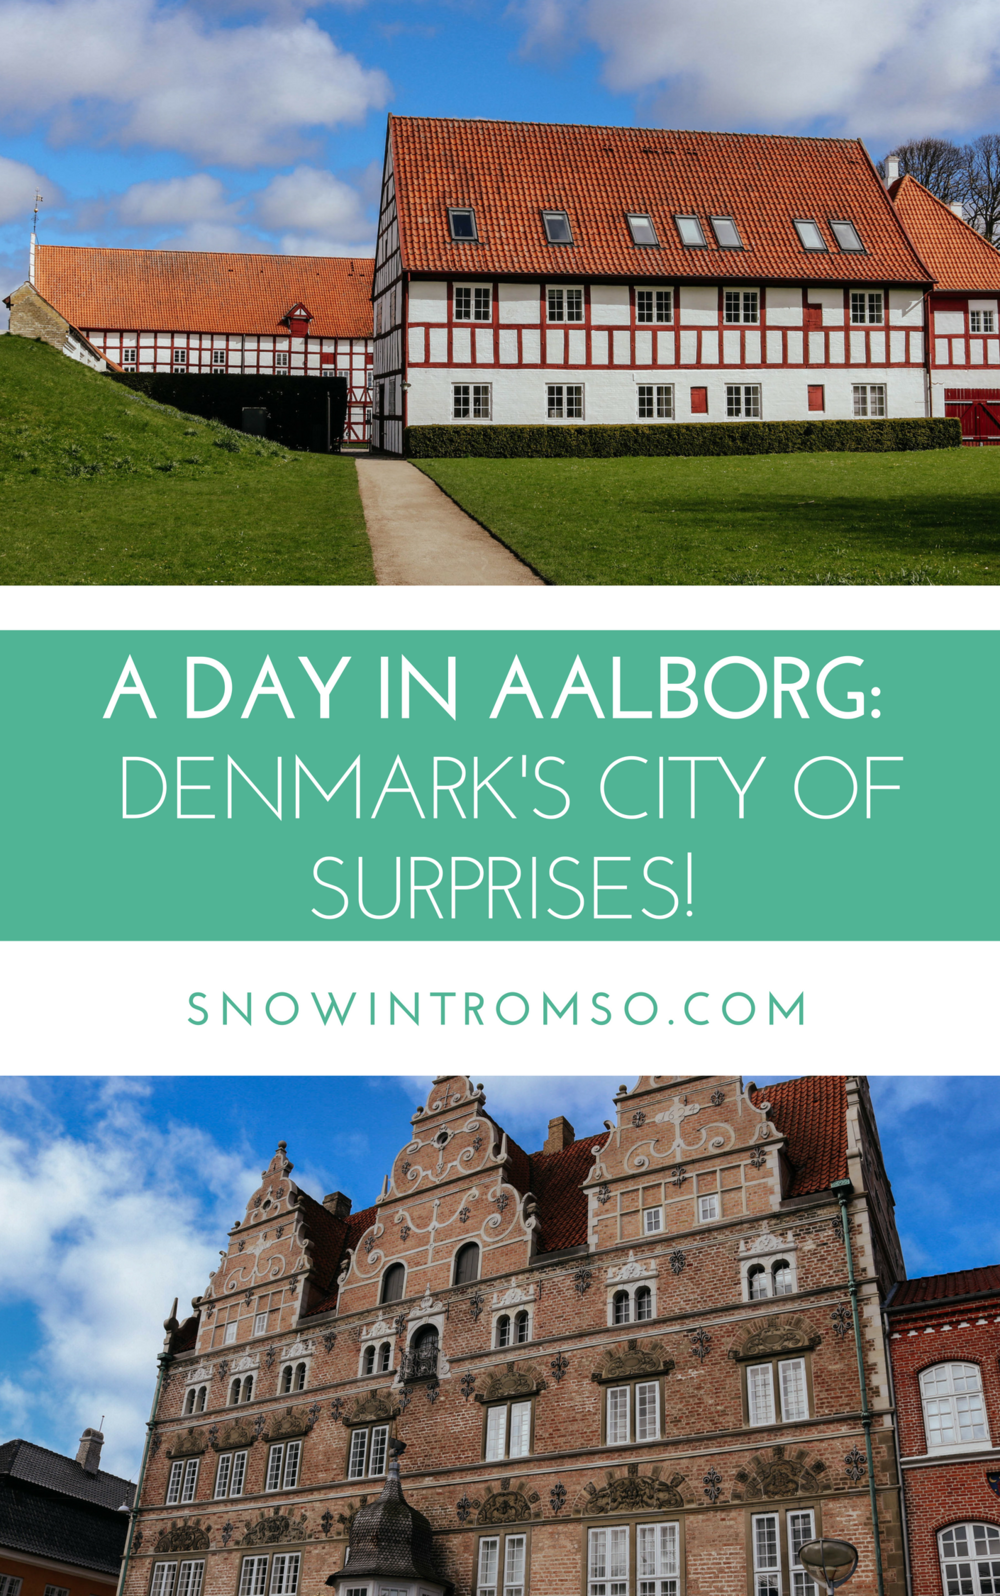 Copy of Copy of Looking for a weekend getaway in Denmark? Click through to the article to find out why Aalborg might be the perfect place!